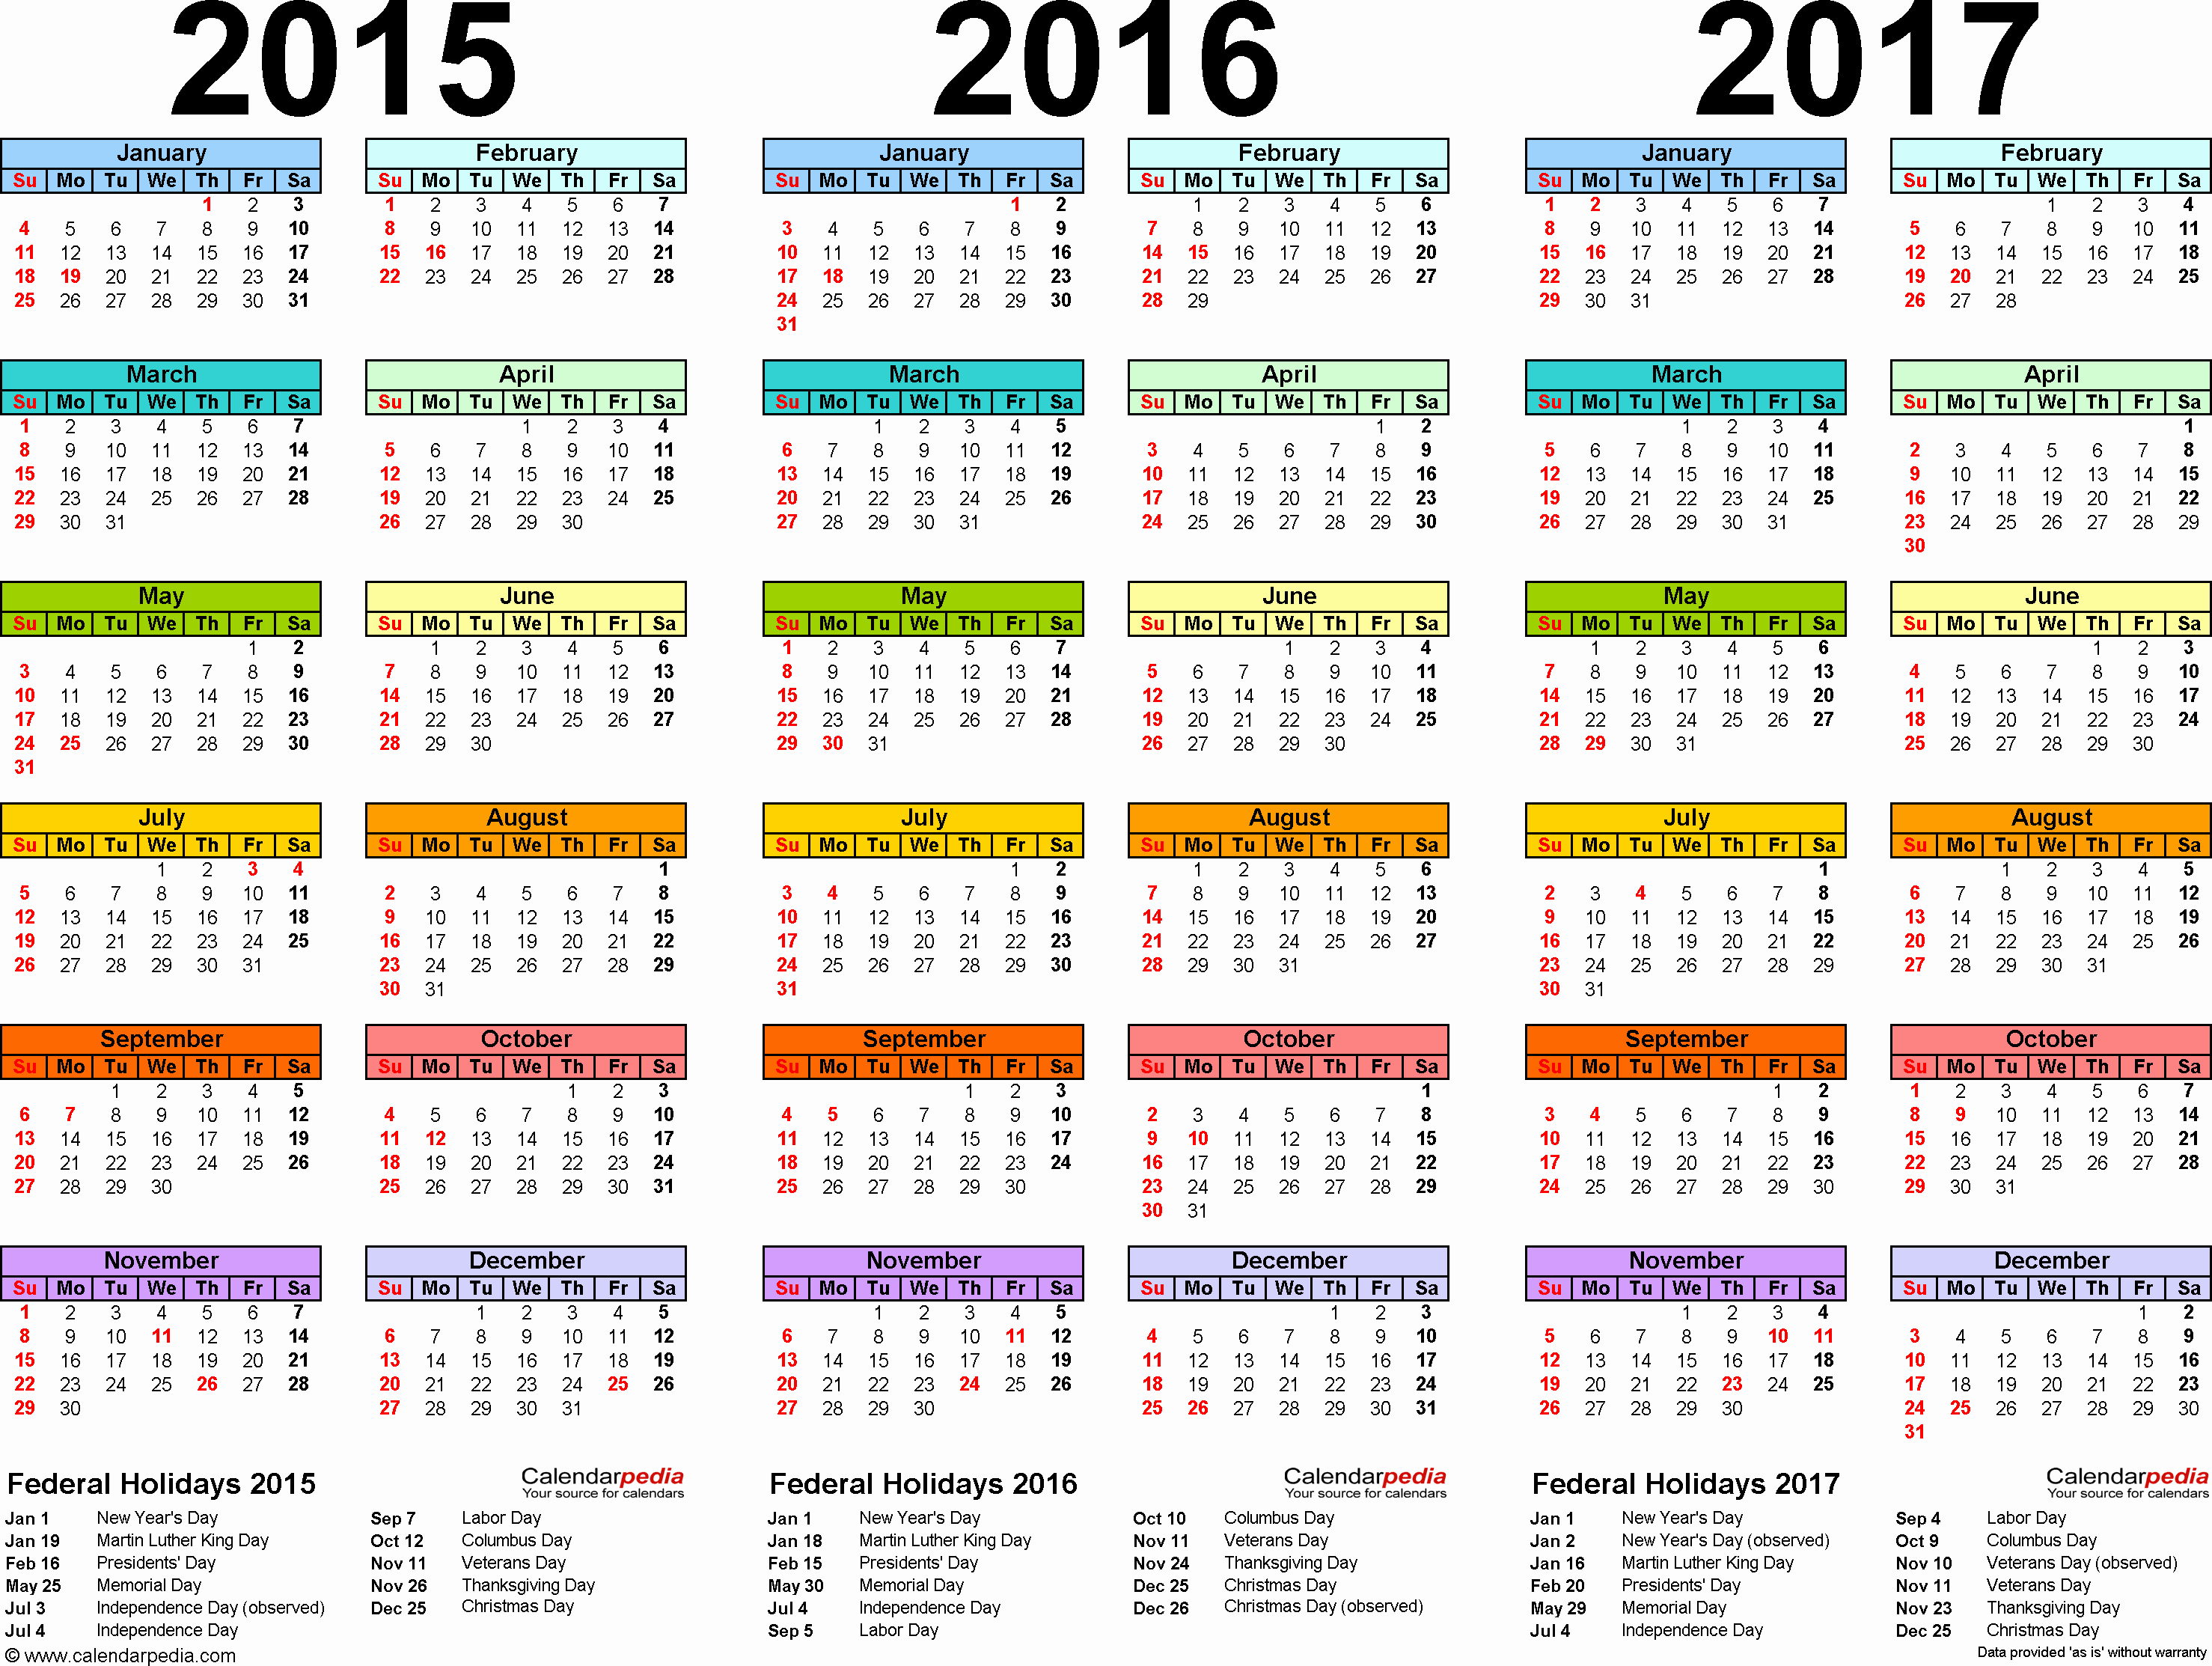 Full Year Calendar 2017 Printable Beautiful 2015 2016 2017 Calendar 4 Three Year Printable Pdf Calendars